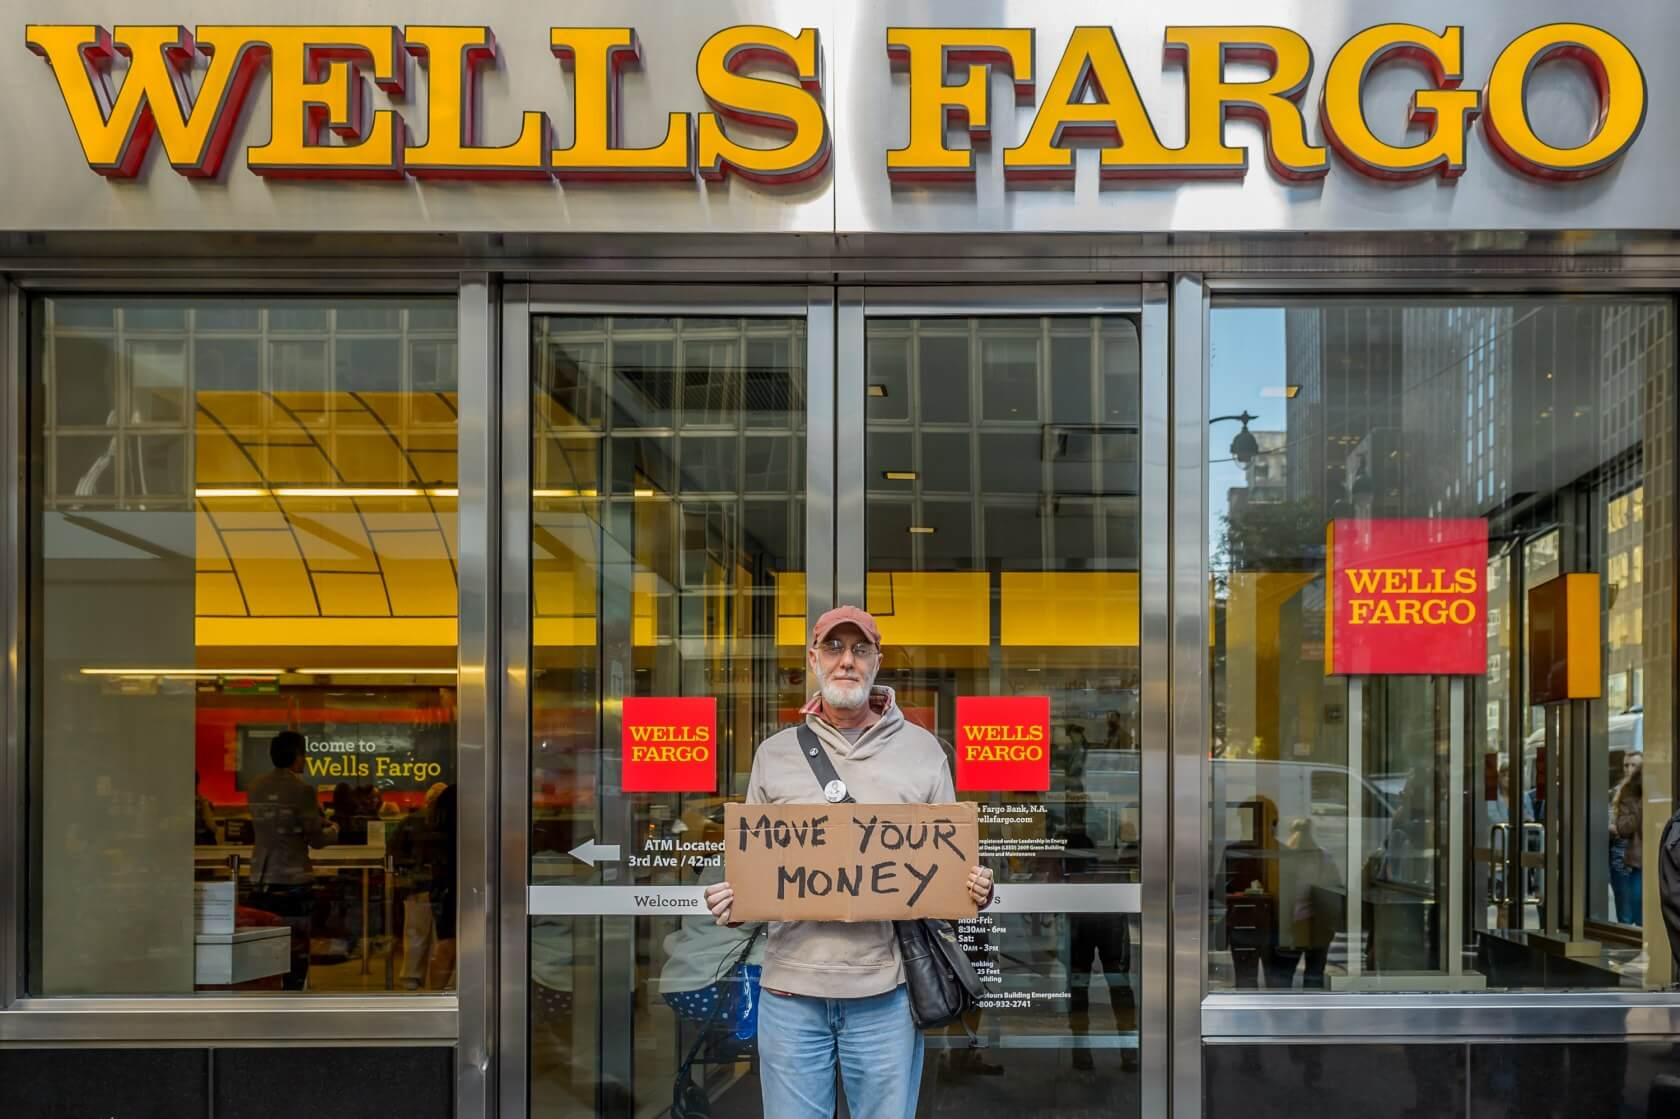 Hundreds of Wells Fargo customers lost their homes due to a